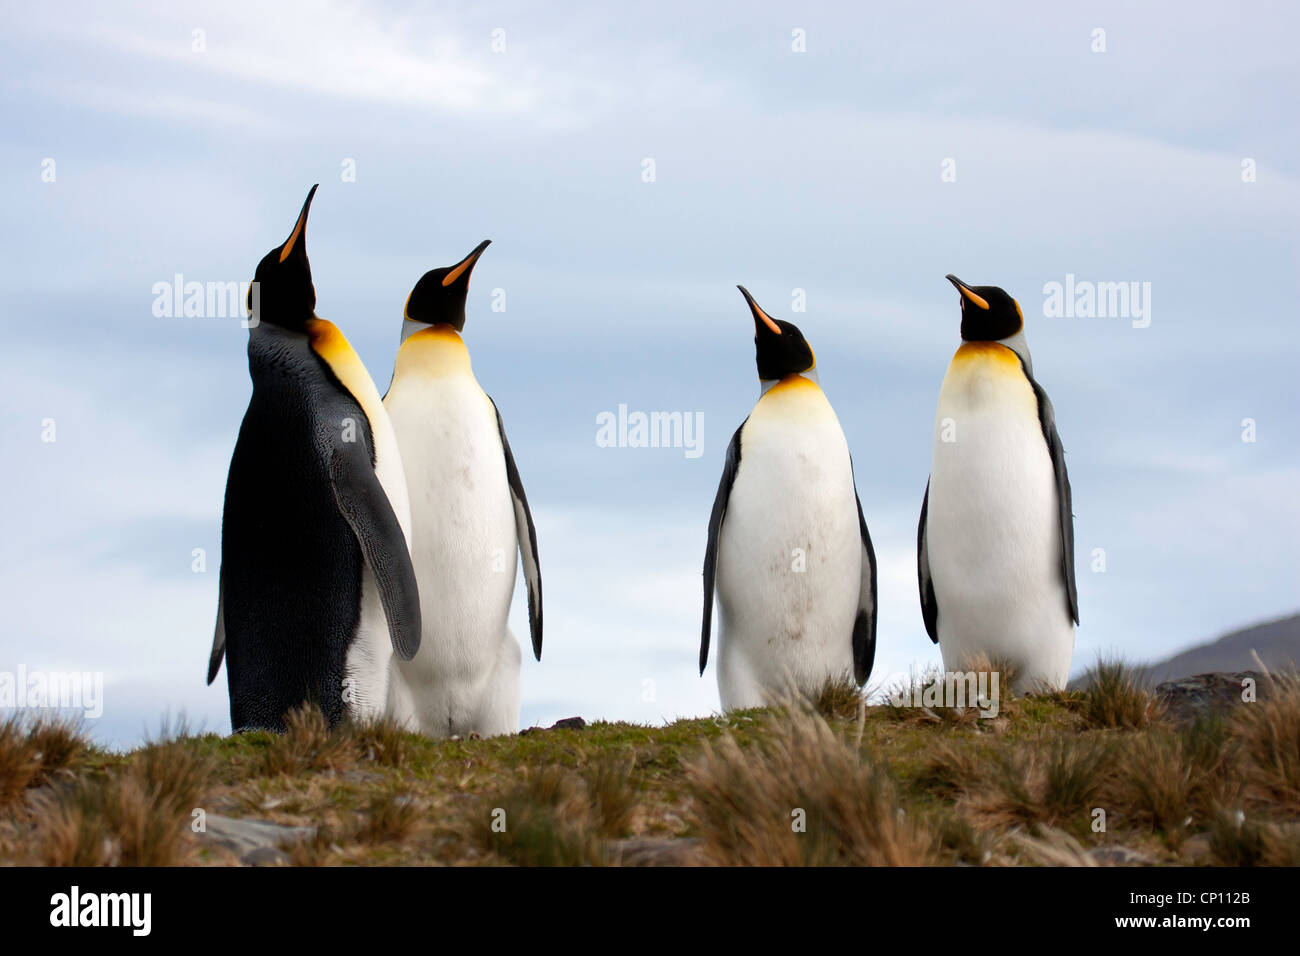 A group of King Penguins on South Georgia stretch in front of a blue sky - Stock Image